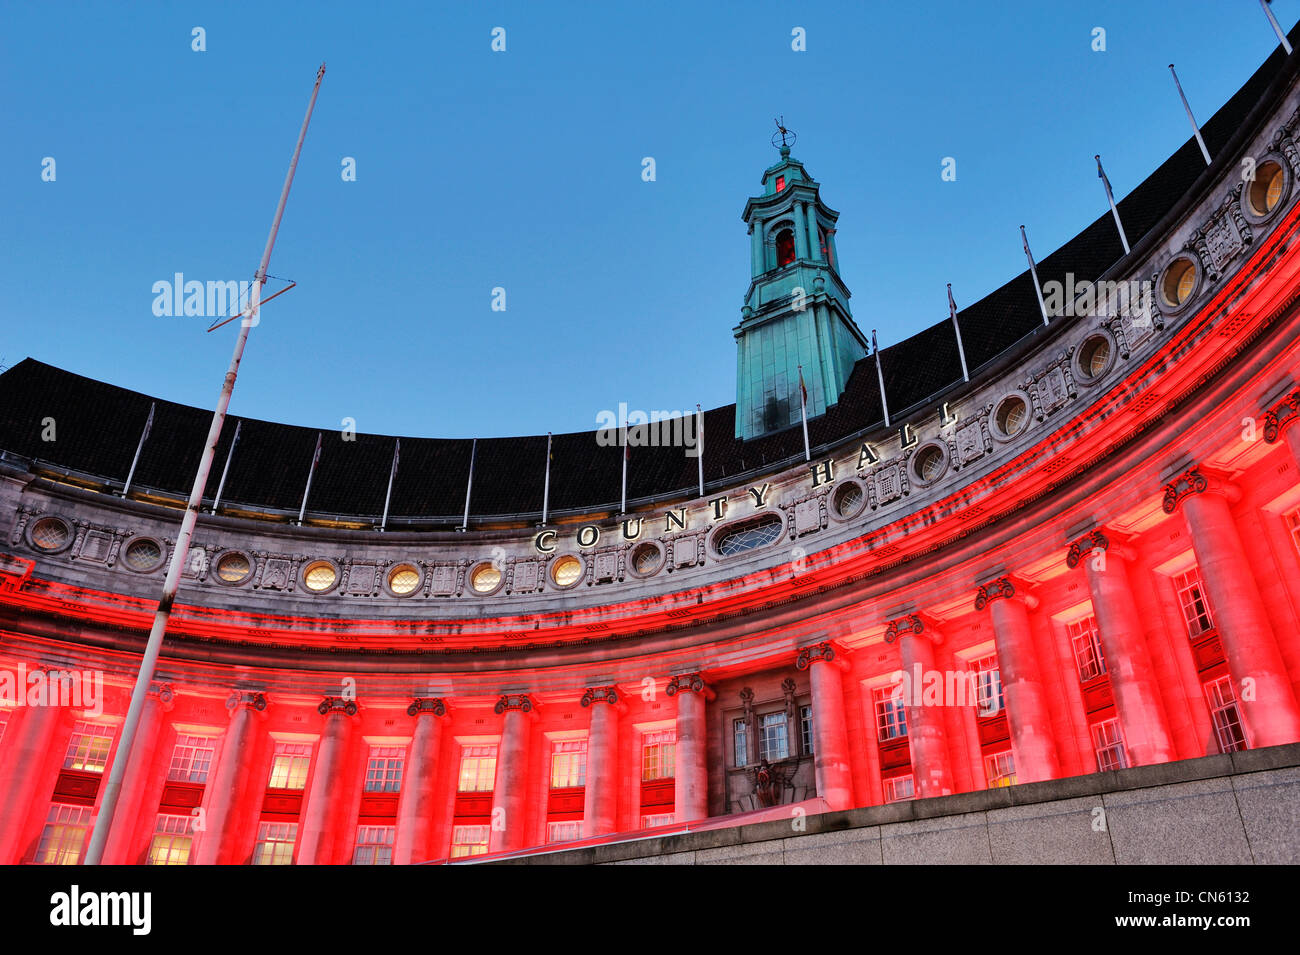 County Hall London lit up at night - Stock Image